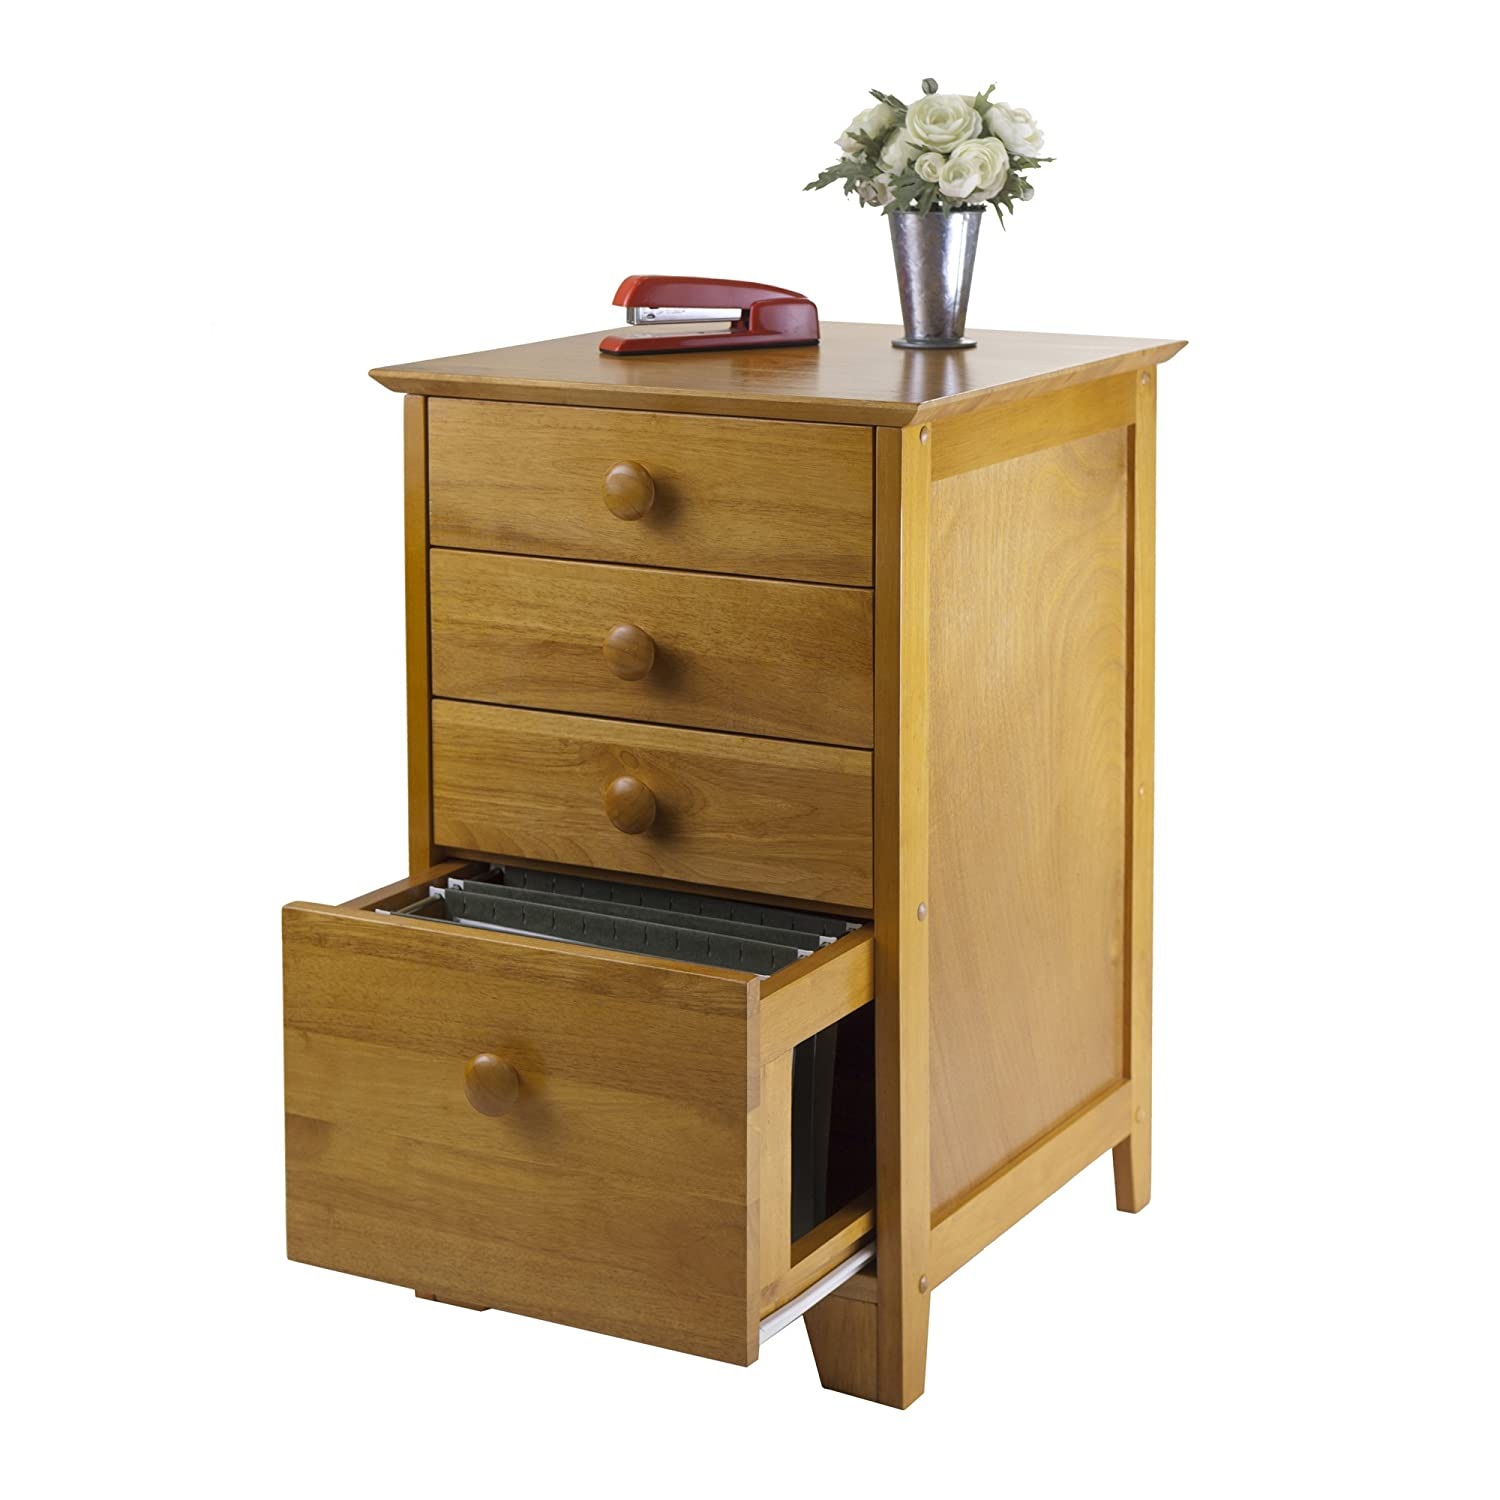 amazoncom honey pine filing cabinet extra storage drawers kitchen u0026 dining